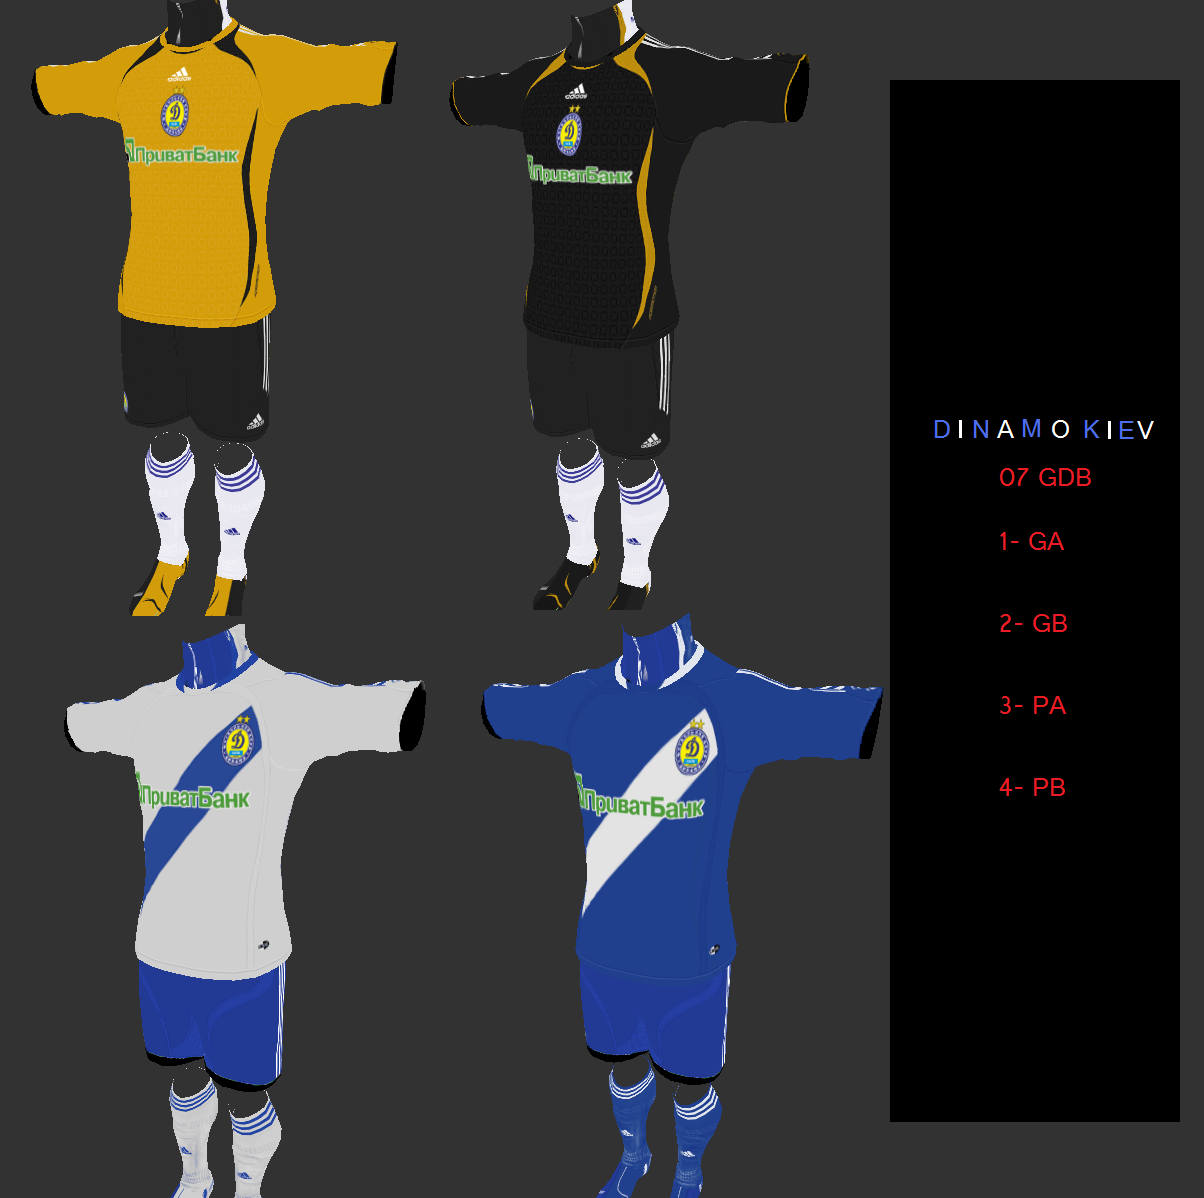 Classic Kits by JSC Netherlands 2002 + Pxd [NO REQUESTS] - Page 2 B47e42cb2c779f1b0a587ac47080fe86o